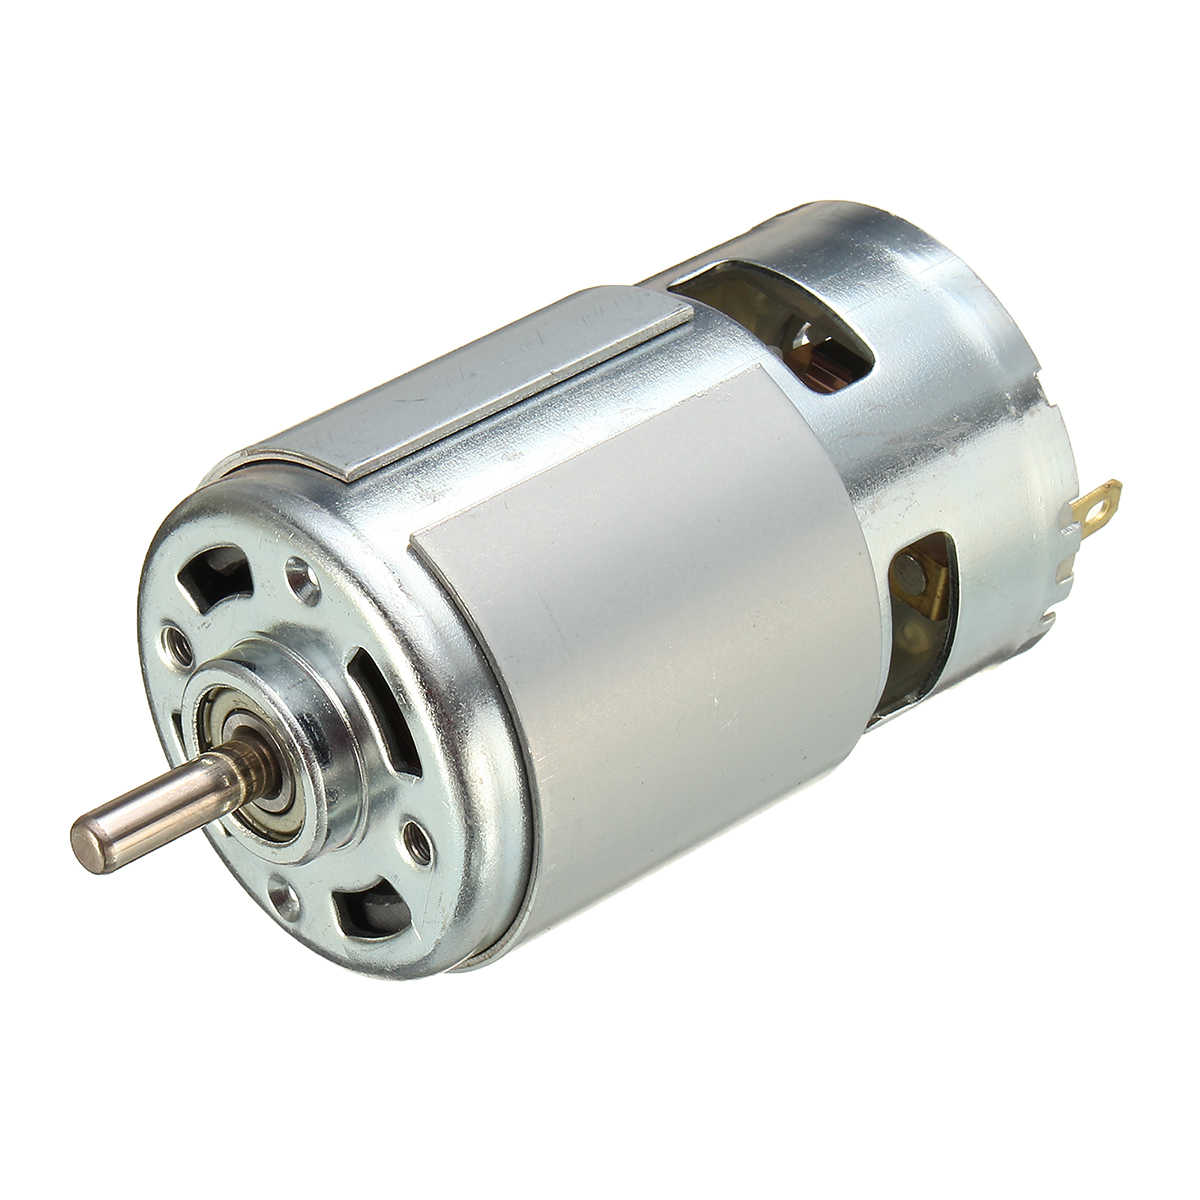 775 Dc Motor Dc 12 V-36 V 3500-9000 Rpm Kogellager Grote Koppel High Power Lage noise Hot Koop Elektronische Component Motor